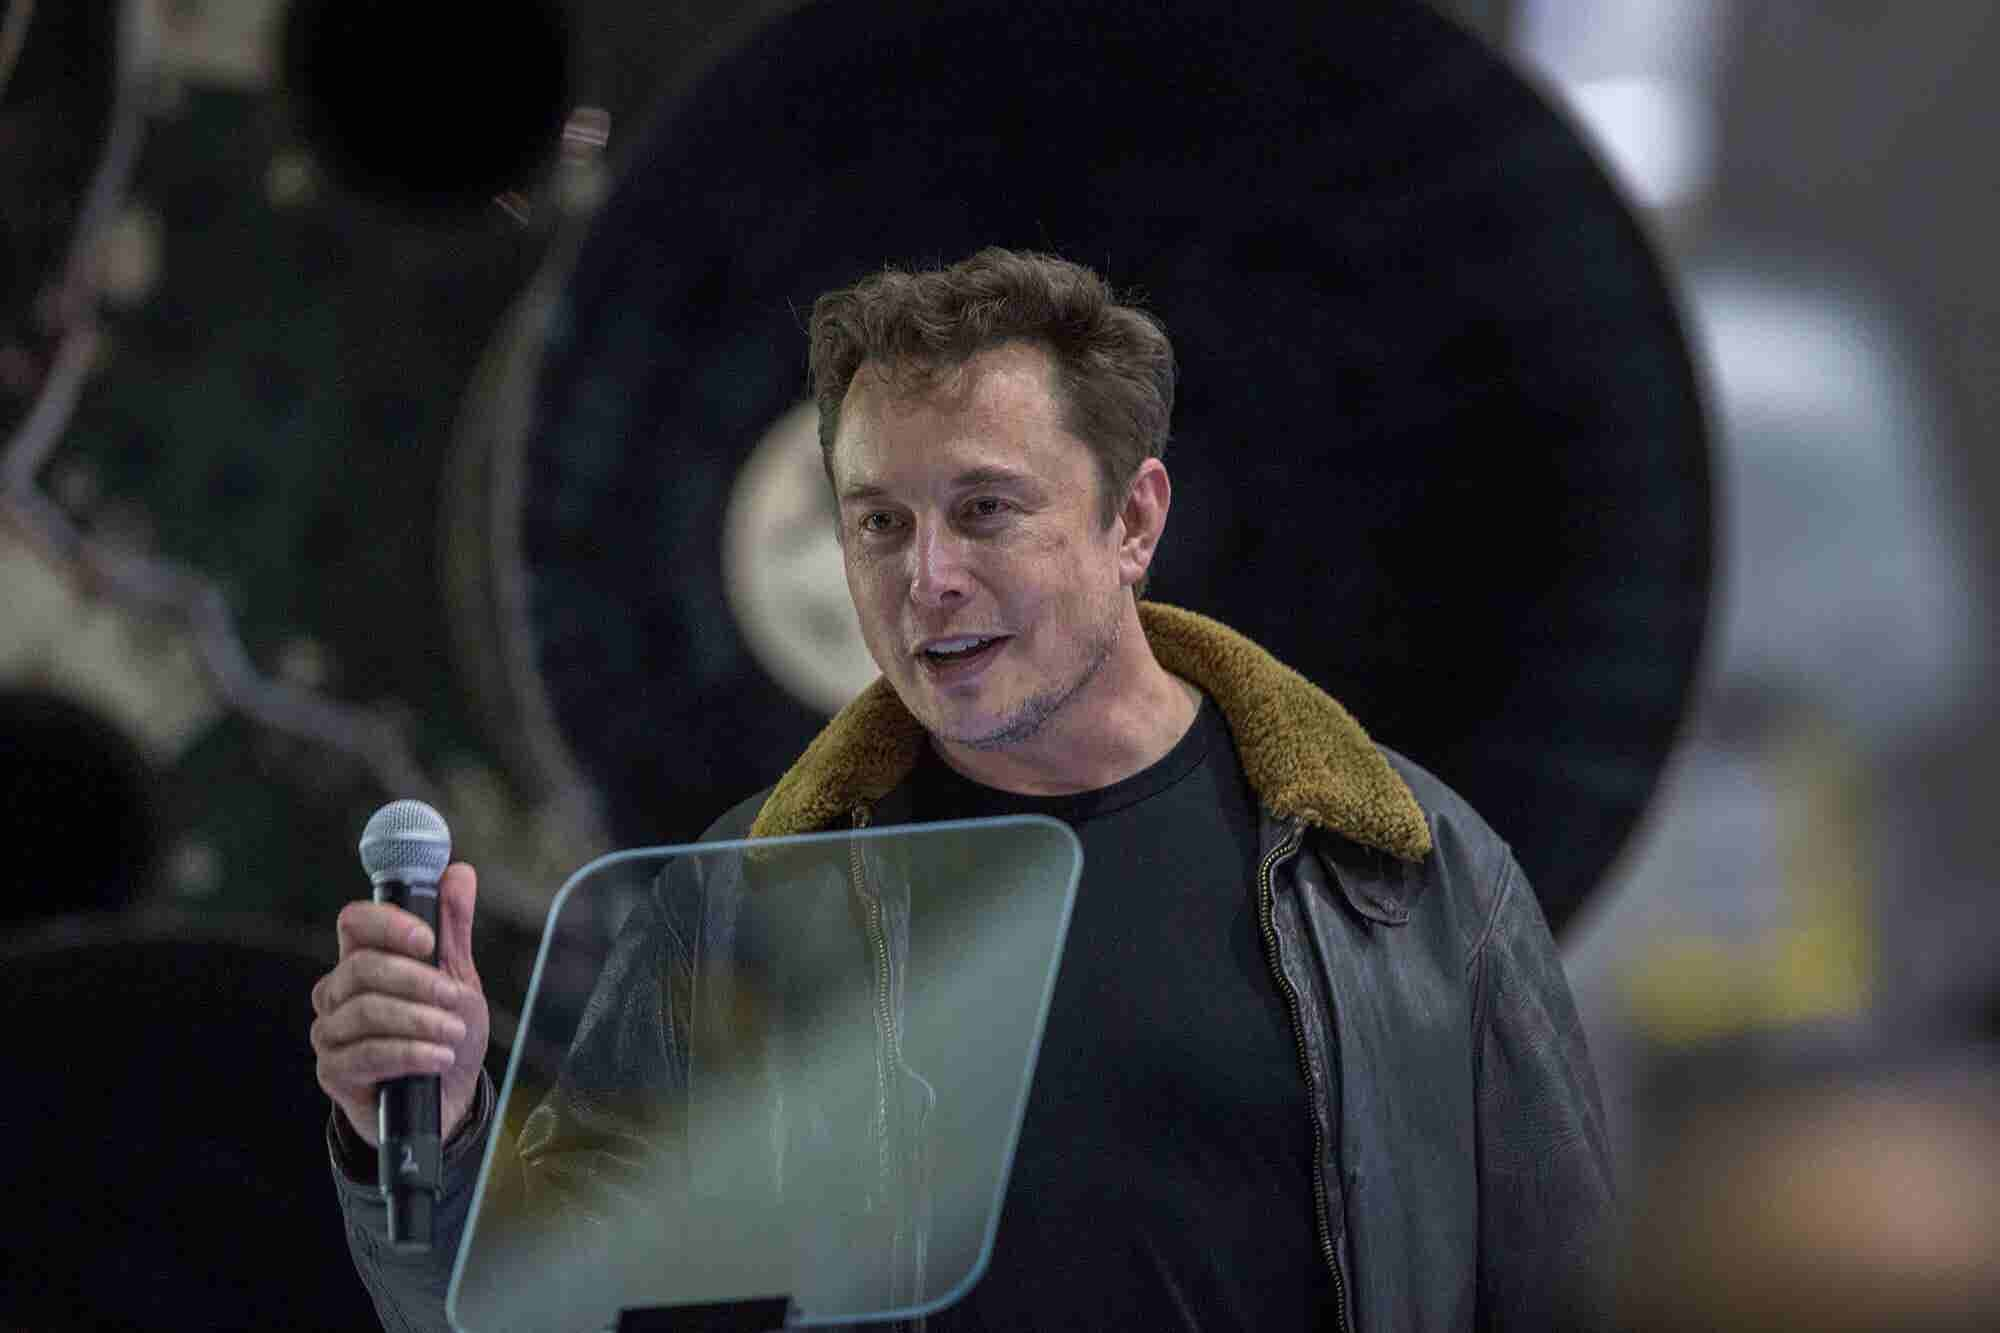 After Tesla's Big Jump, Elon Musk Intends to Buy Another $20 Million in Company Stock